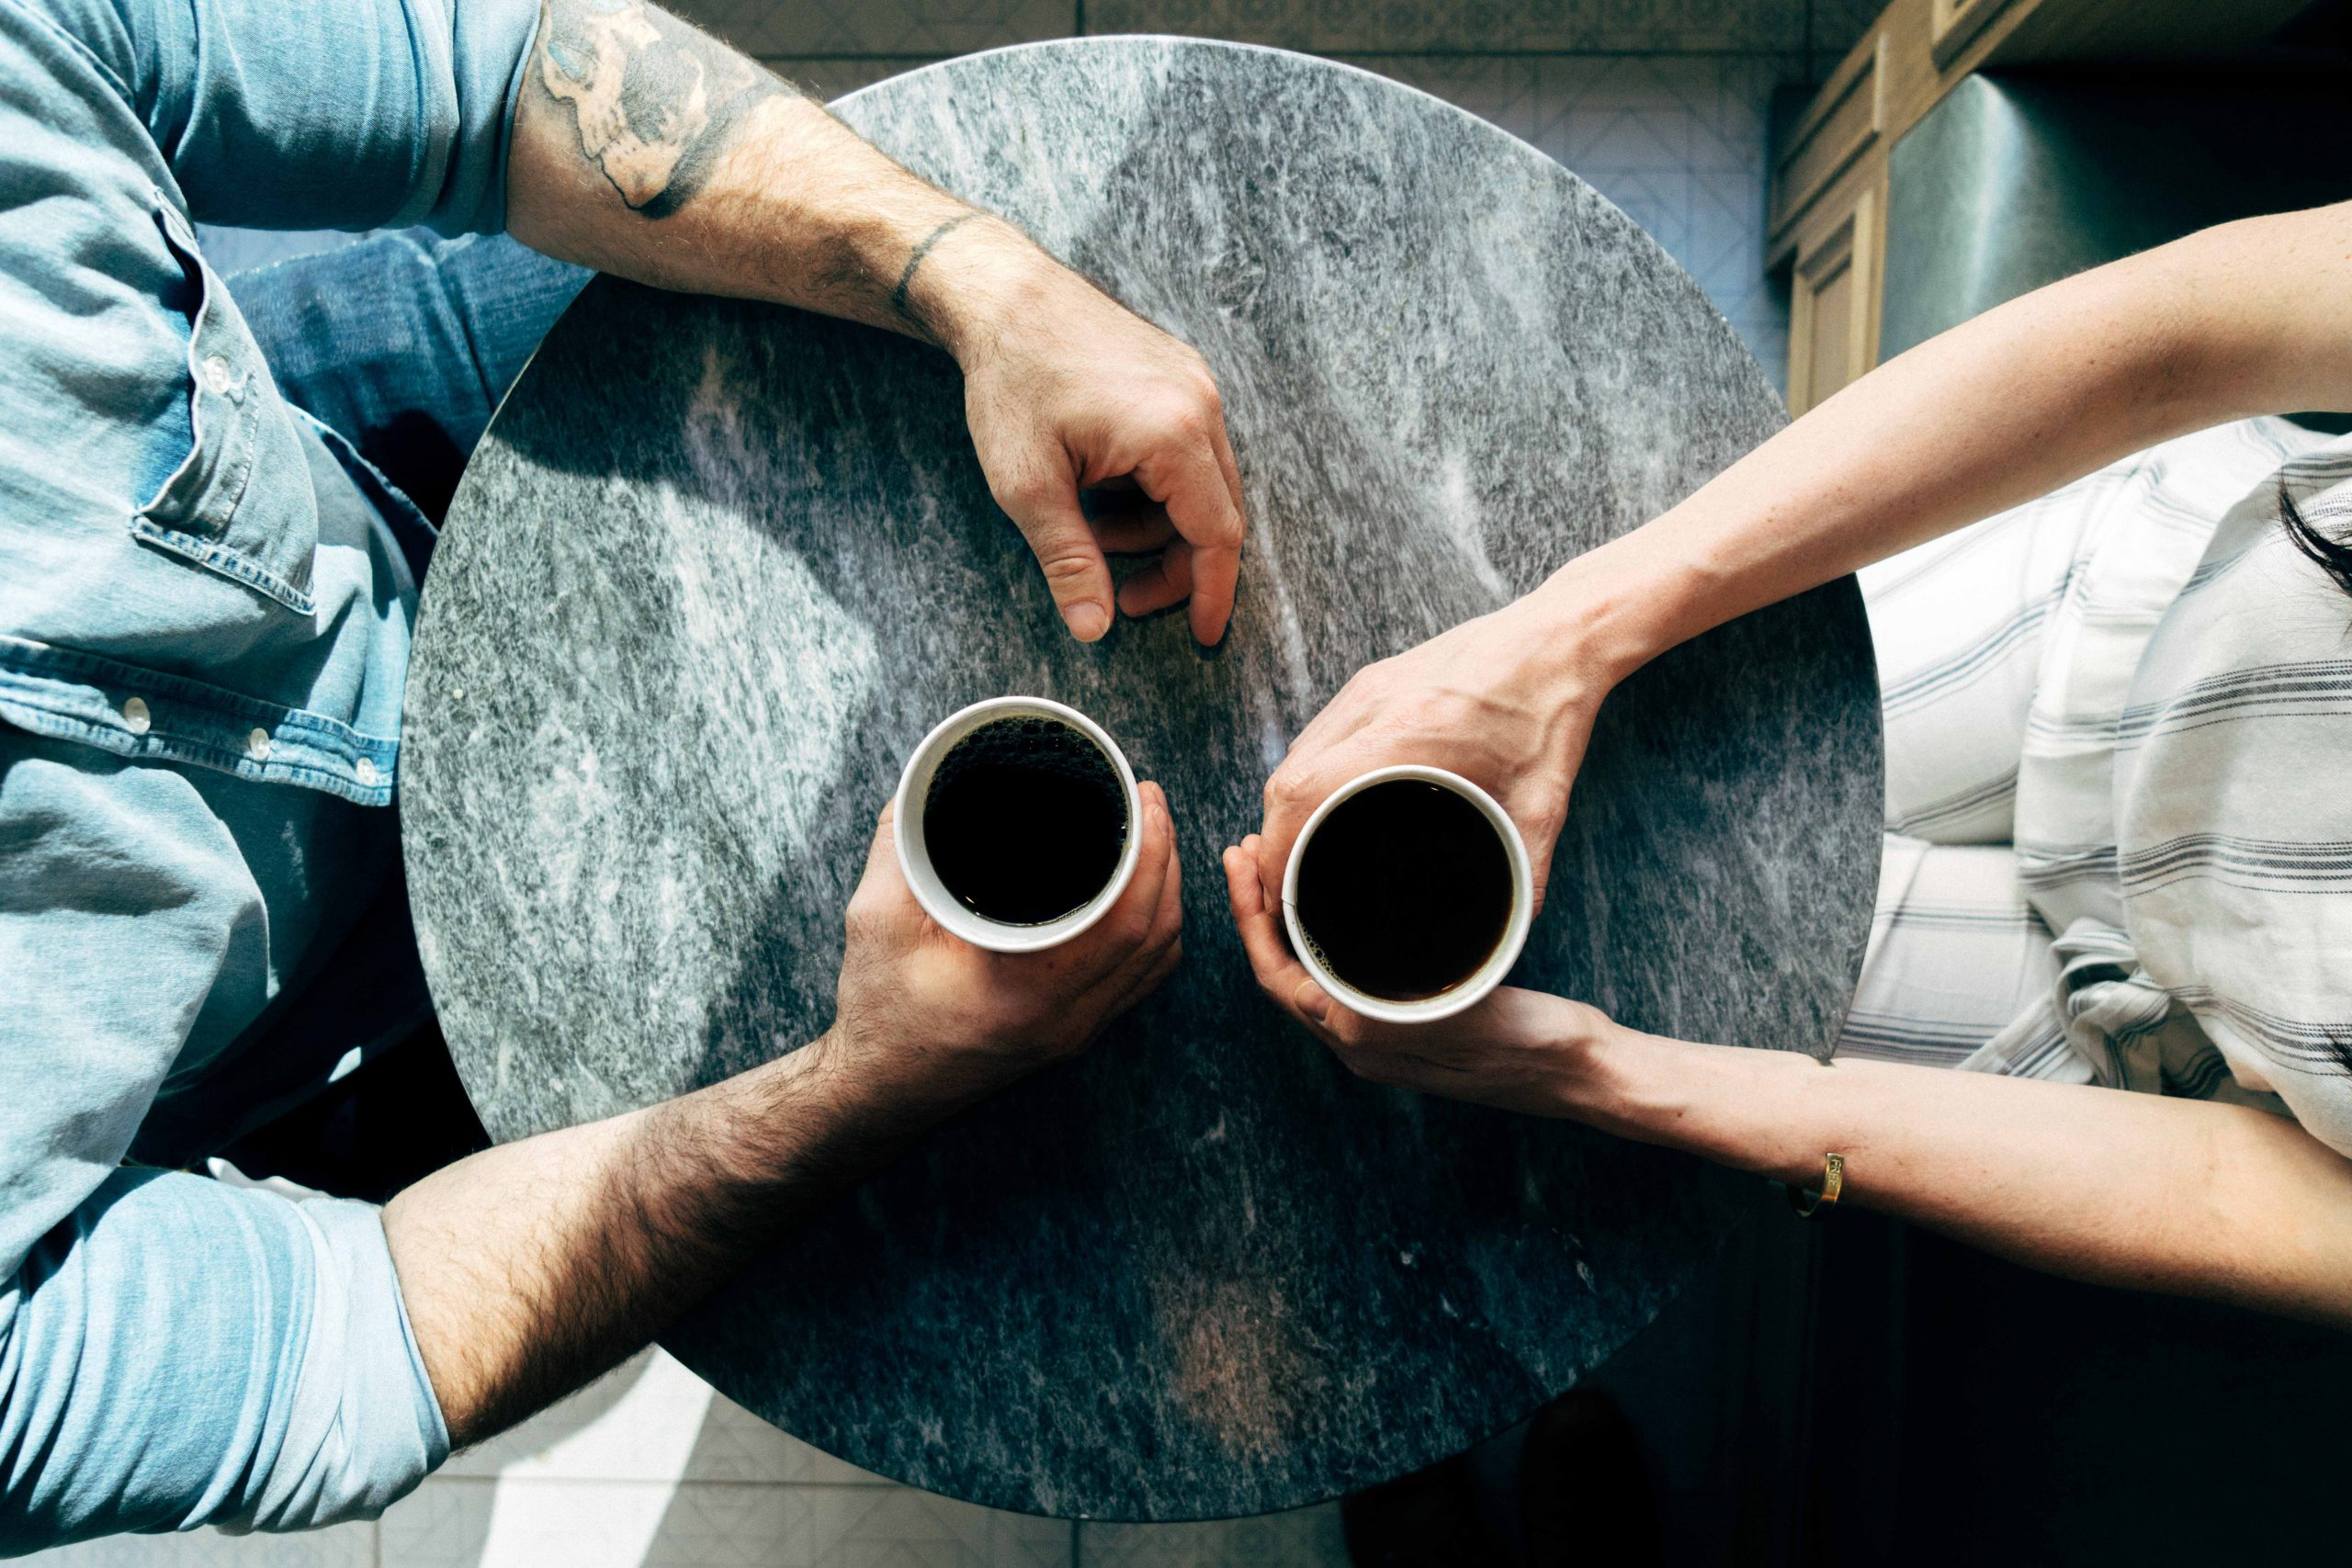 Two people sitting at a table drinking coffee